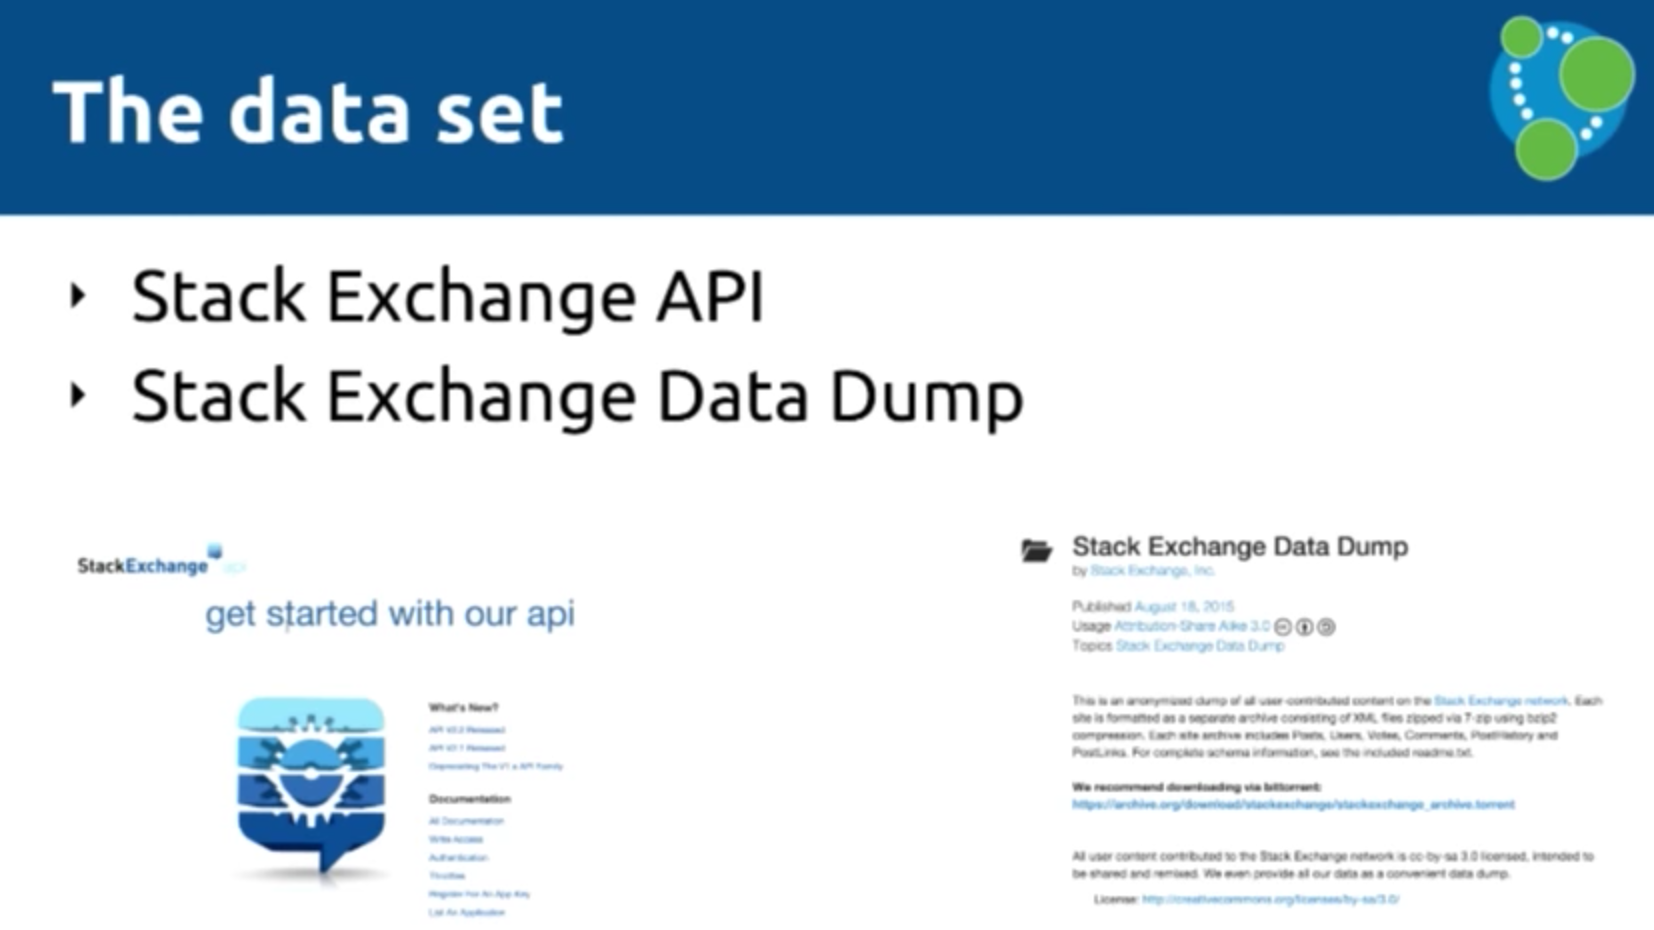 The Stack Exchange API and data dump